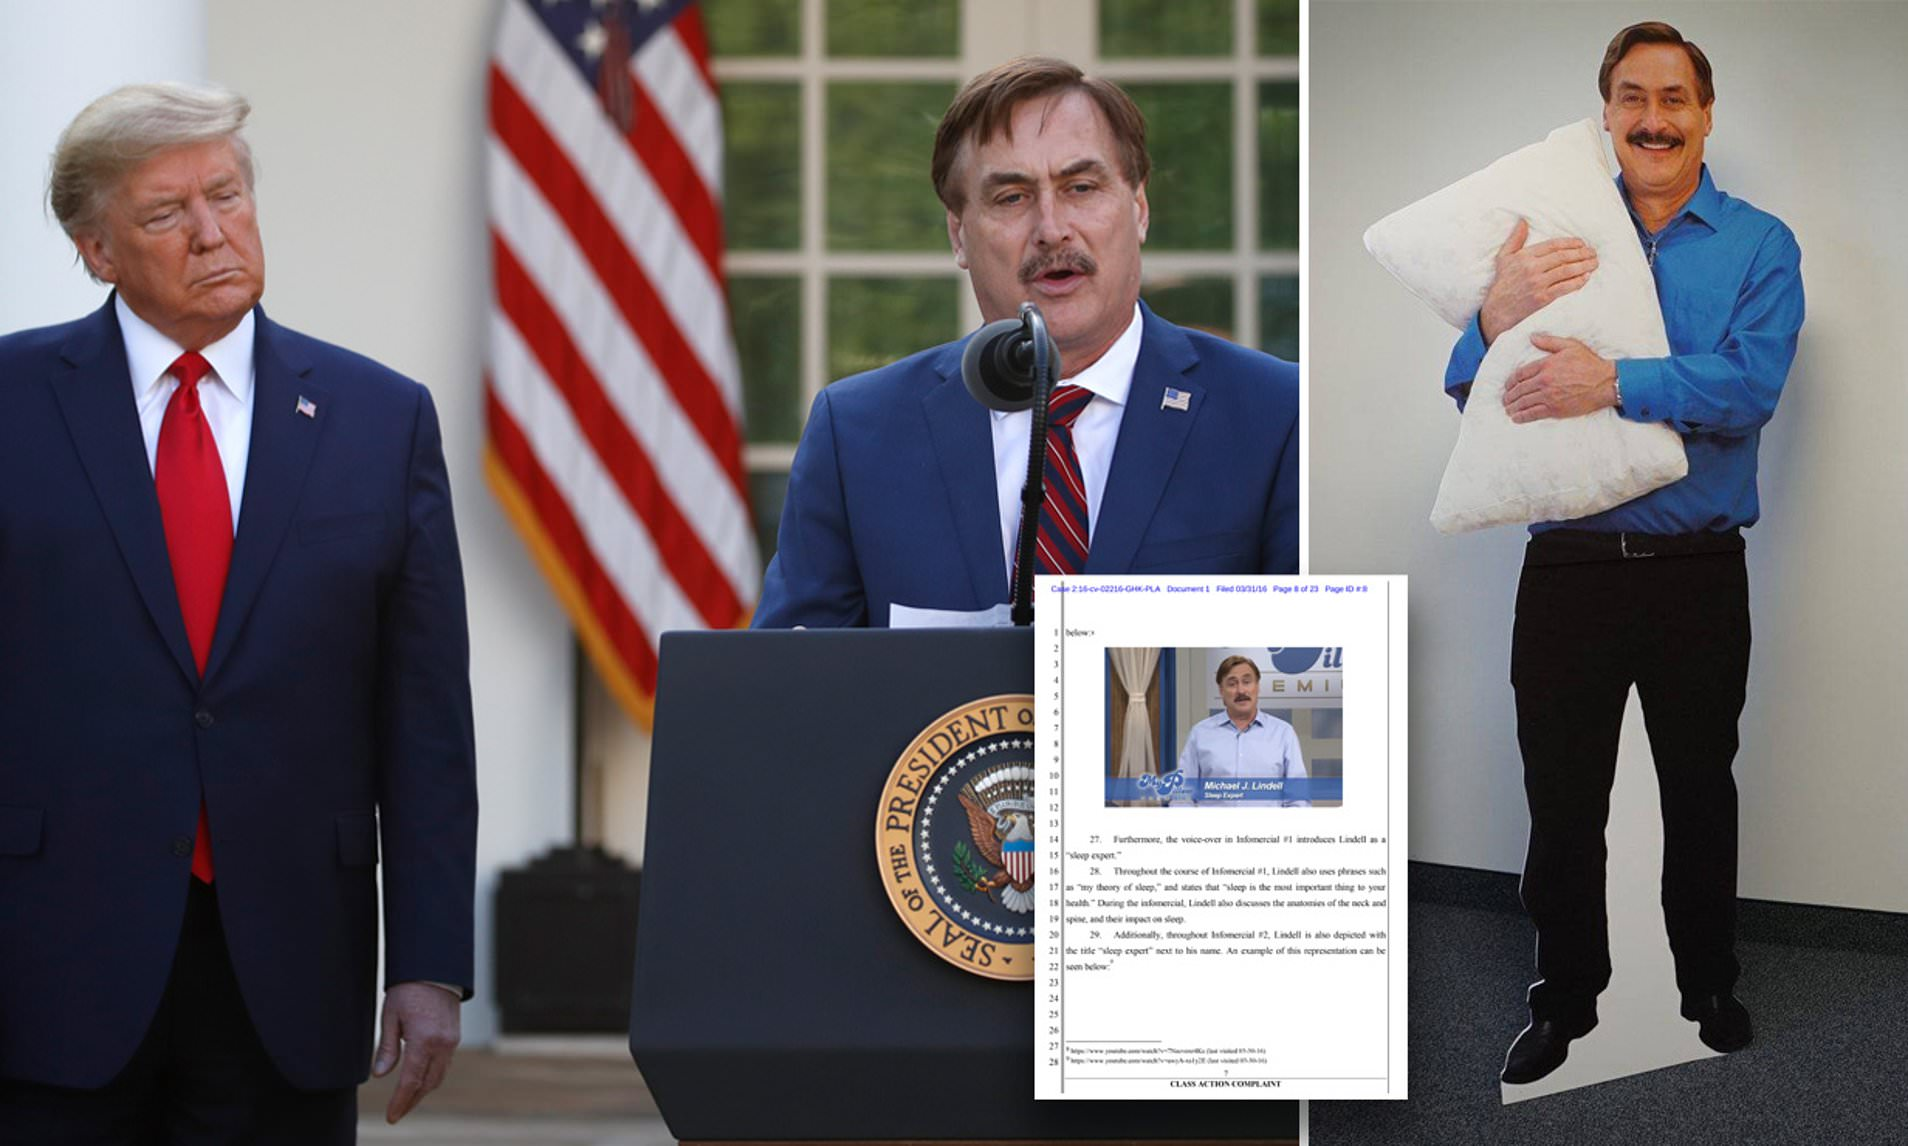 mike lindell my pillow ceo and friend